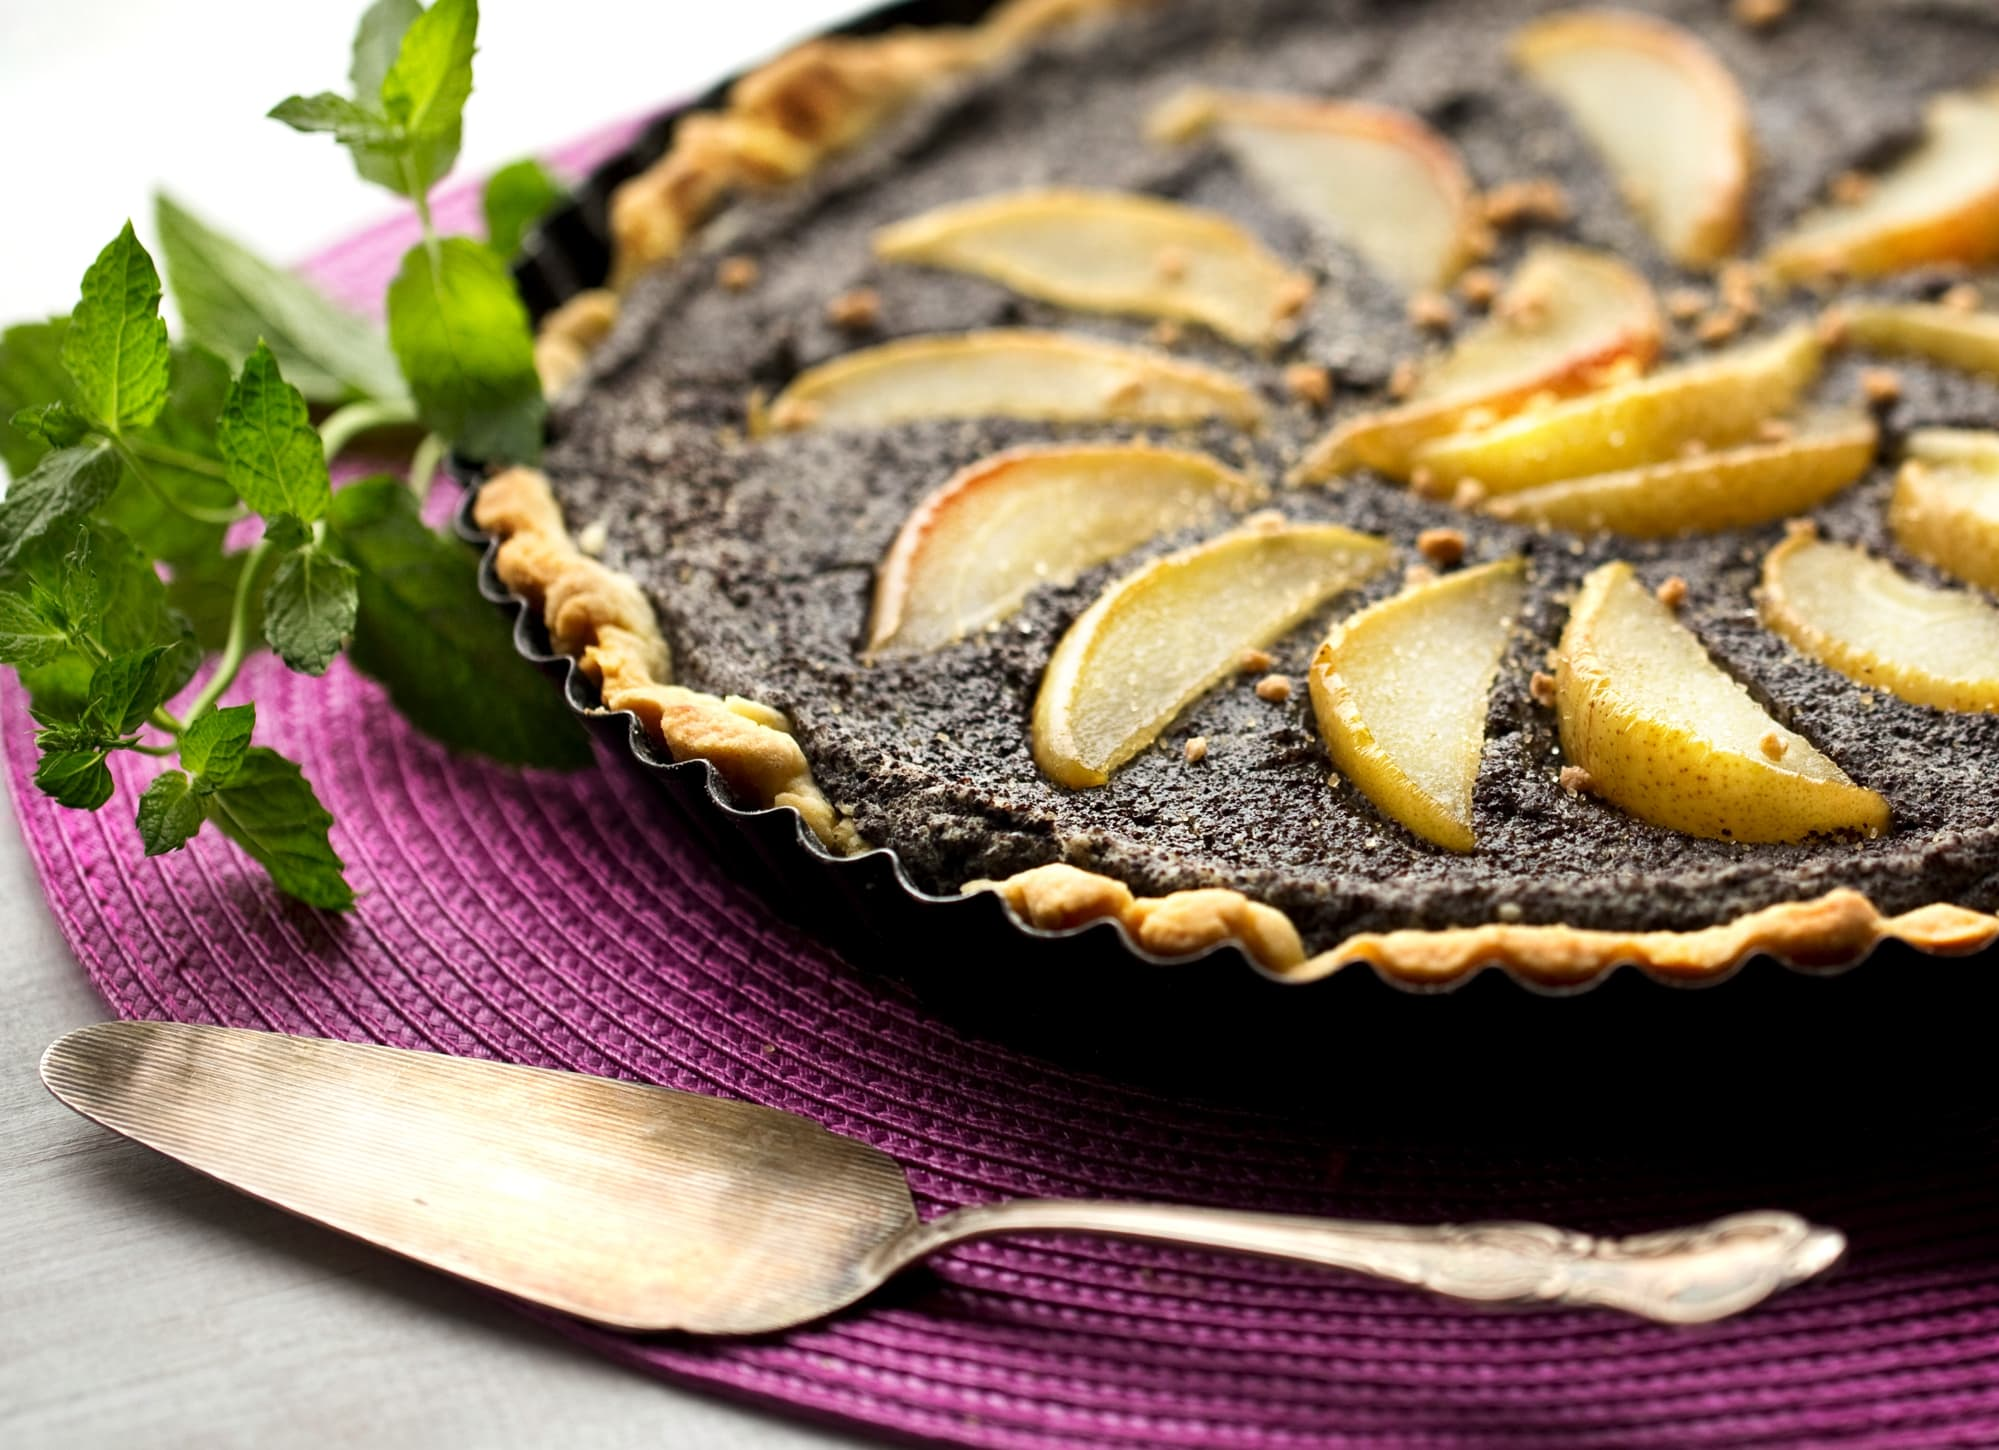 POPPY-SEED CAKE WITH PEARS